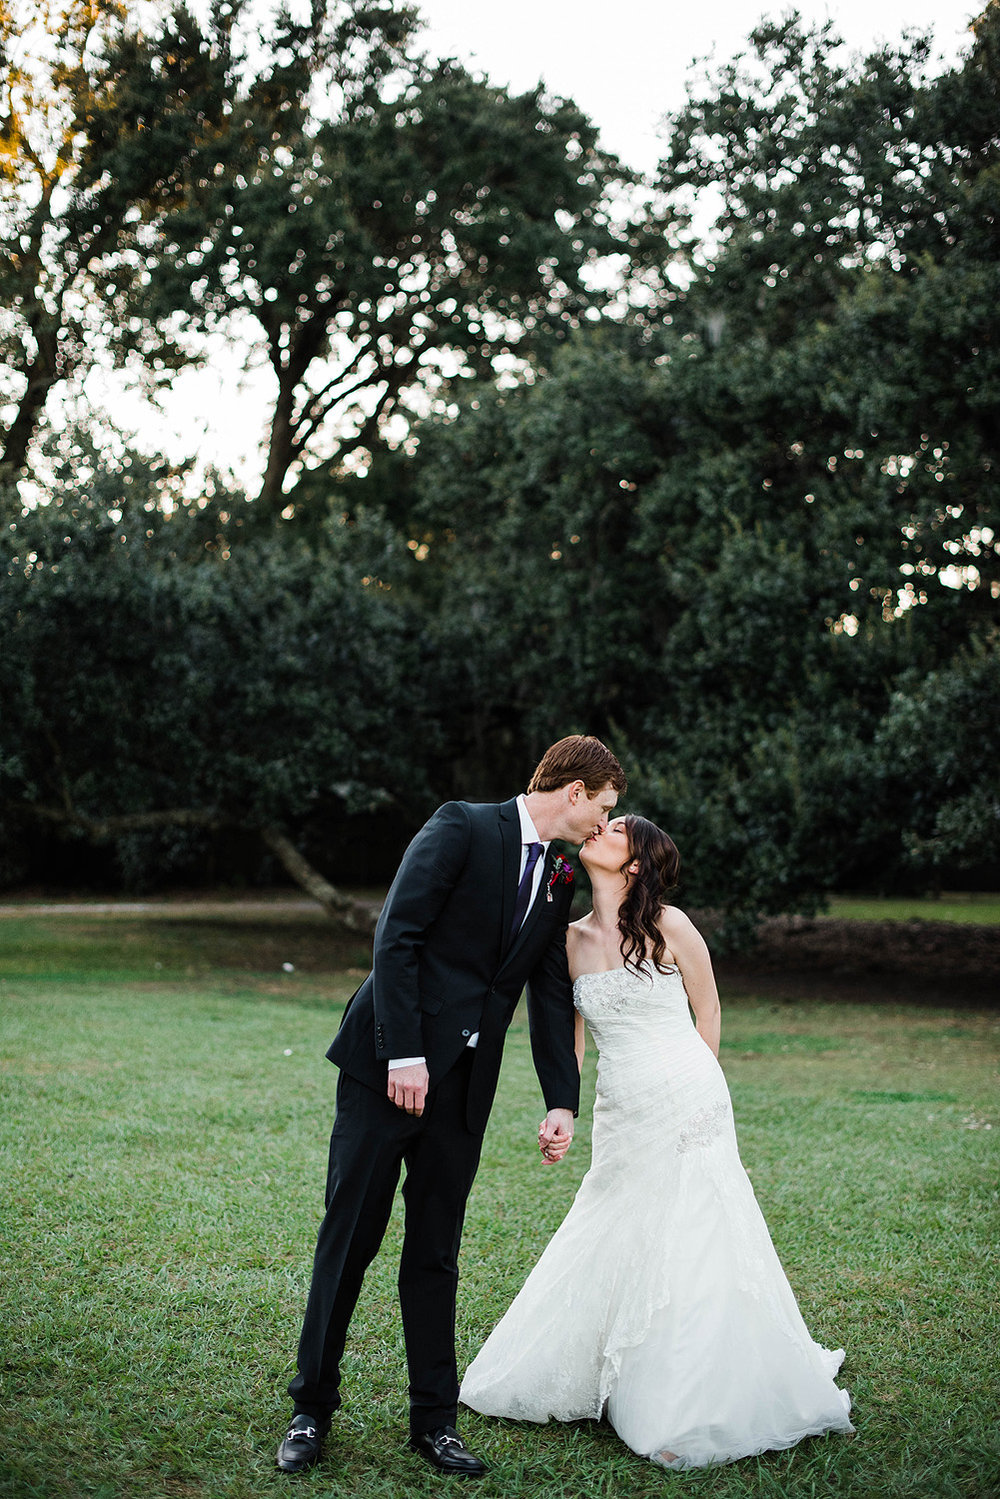 Lisa + Rock-Tree-of-Life-Audubon-Park-New-Orleans-Elopement-Photos_Online_0278.jpg